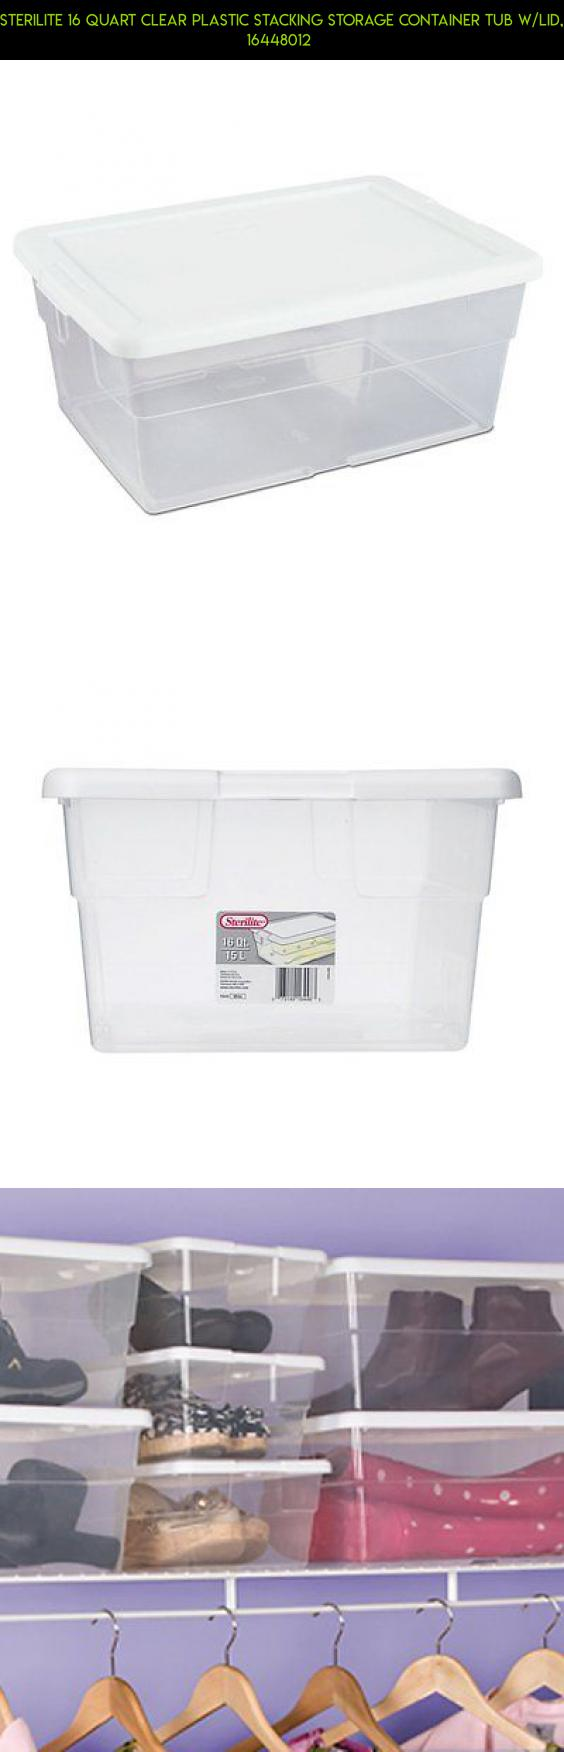 Sterilite 16 Quart Clear Plastic Stacking Storage Container Tub w/Lid, 16448012  #parts #drone #products #racing #shopping #camera #fpv #gadgets #kit #technology #tubs #tech #storage #plans